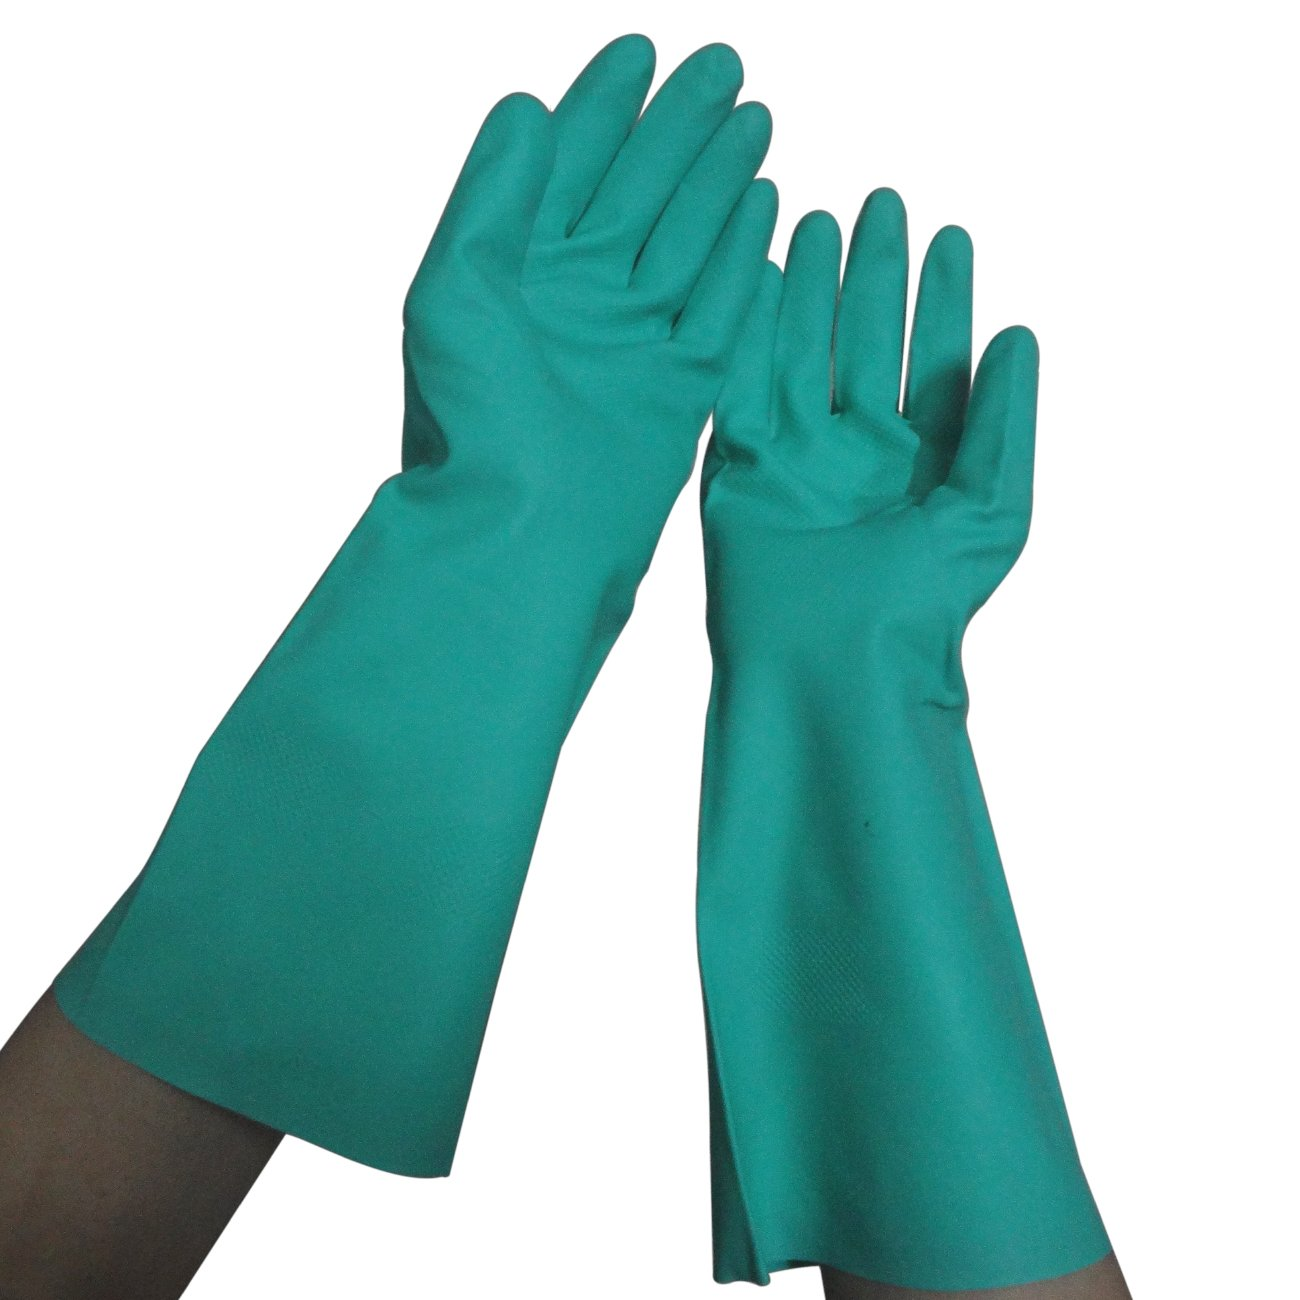 Tripop Heavy-duty Nitrile Gloves, Latex-free household Gloves with Effective Resistance to Oil, Acid, Alkali and Solvent (3-Pack, Medium)